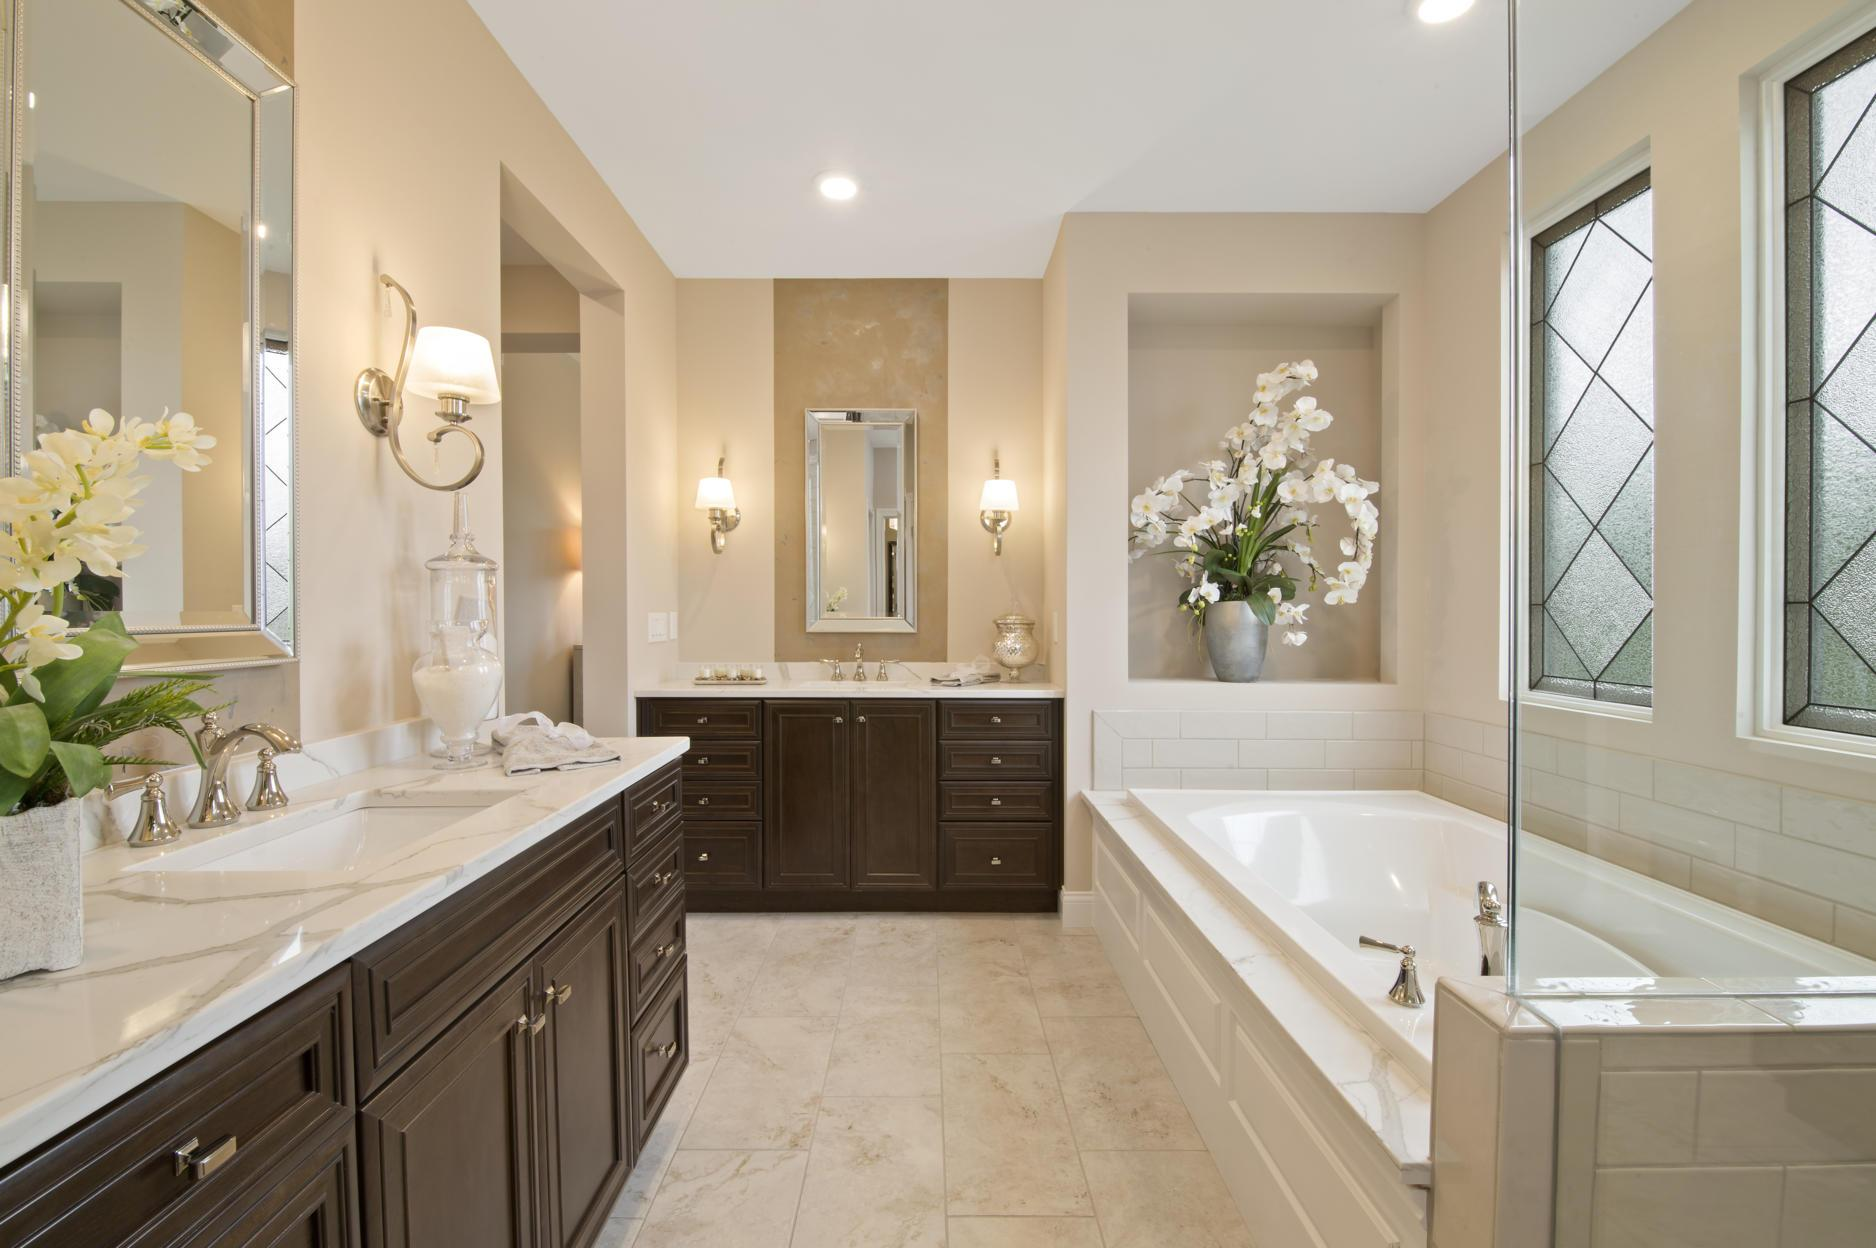 Bathroom featured in the Crestwood By Drees Homes in Cincinnati, OH